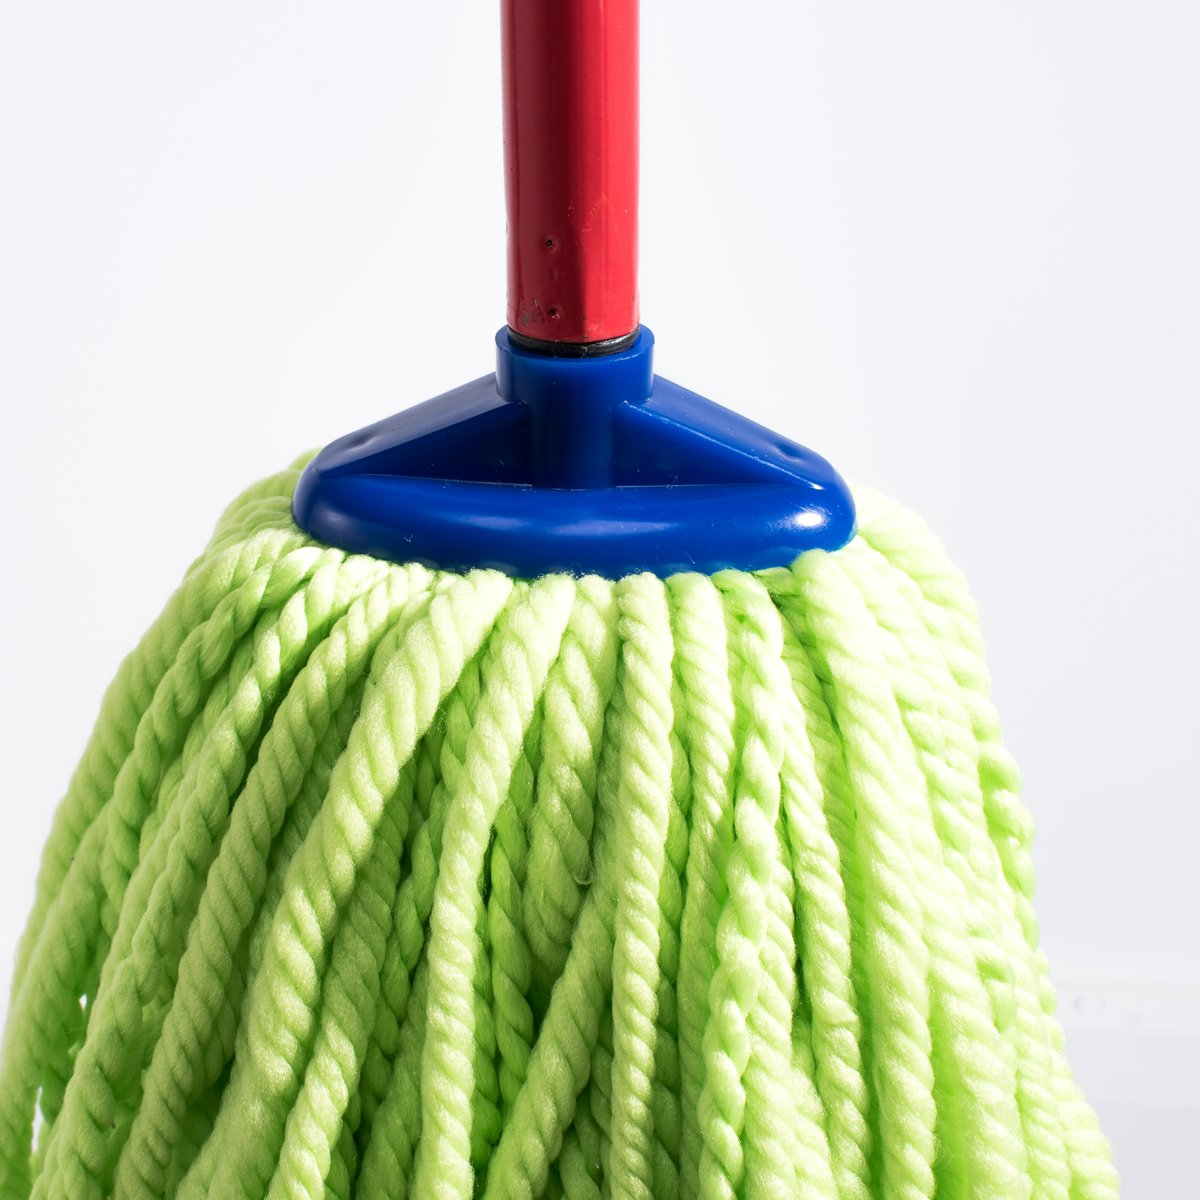 QIPENG 12'' Professional Microfiber Mop Head 4 Pack, Washable Wet and Dry Mop Heads, Super Absorbent Mop (Green) by QIPENG (Image #4)